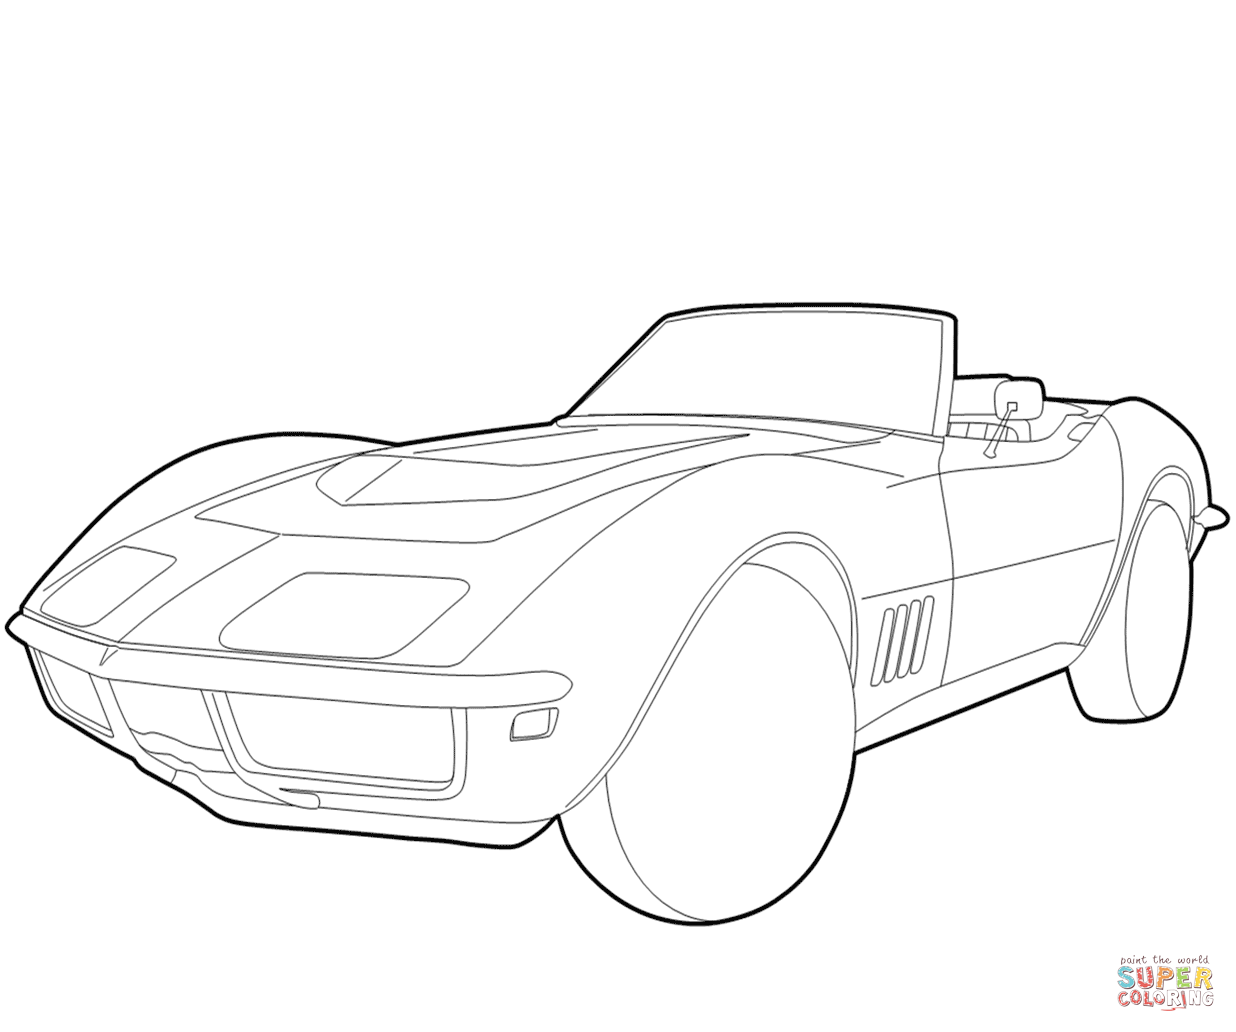 Chevy Logo Drawing At Getdrawings